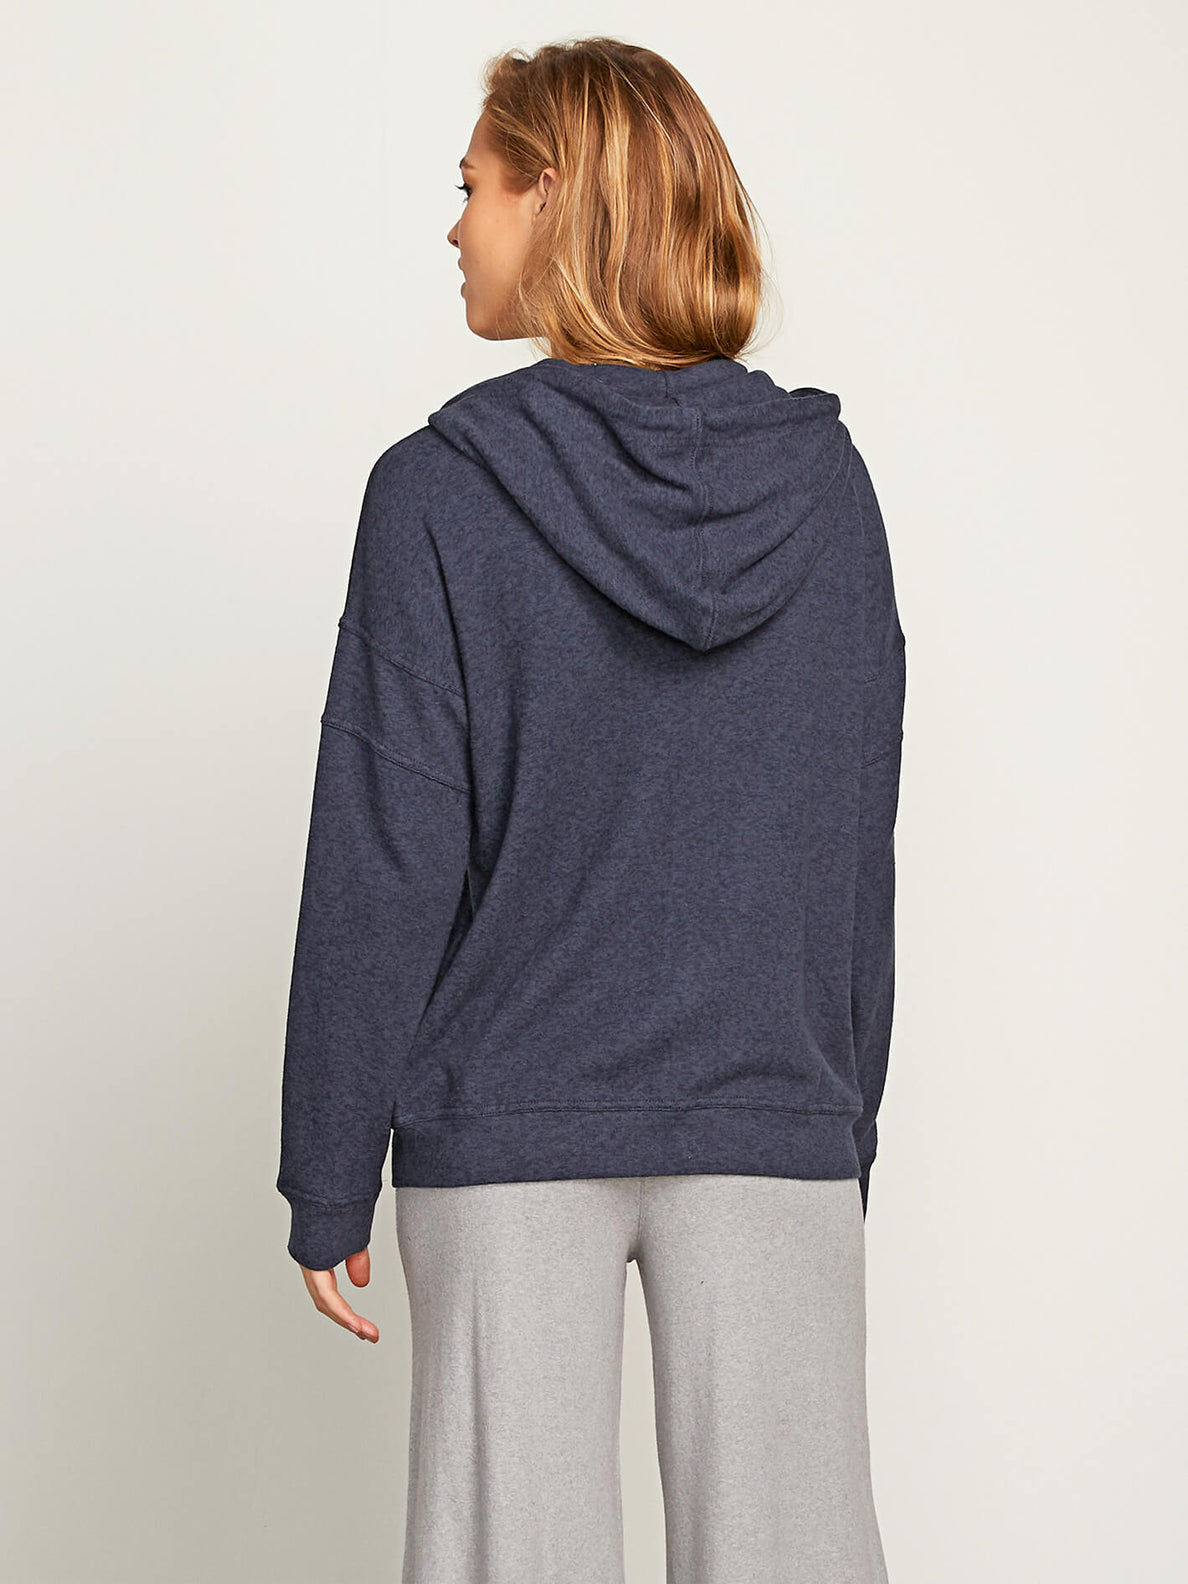 Lived In Lounge Zip Hoodie In Sea Navy, Back View